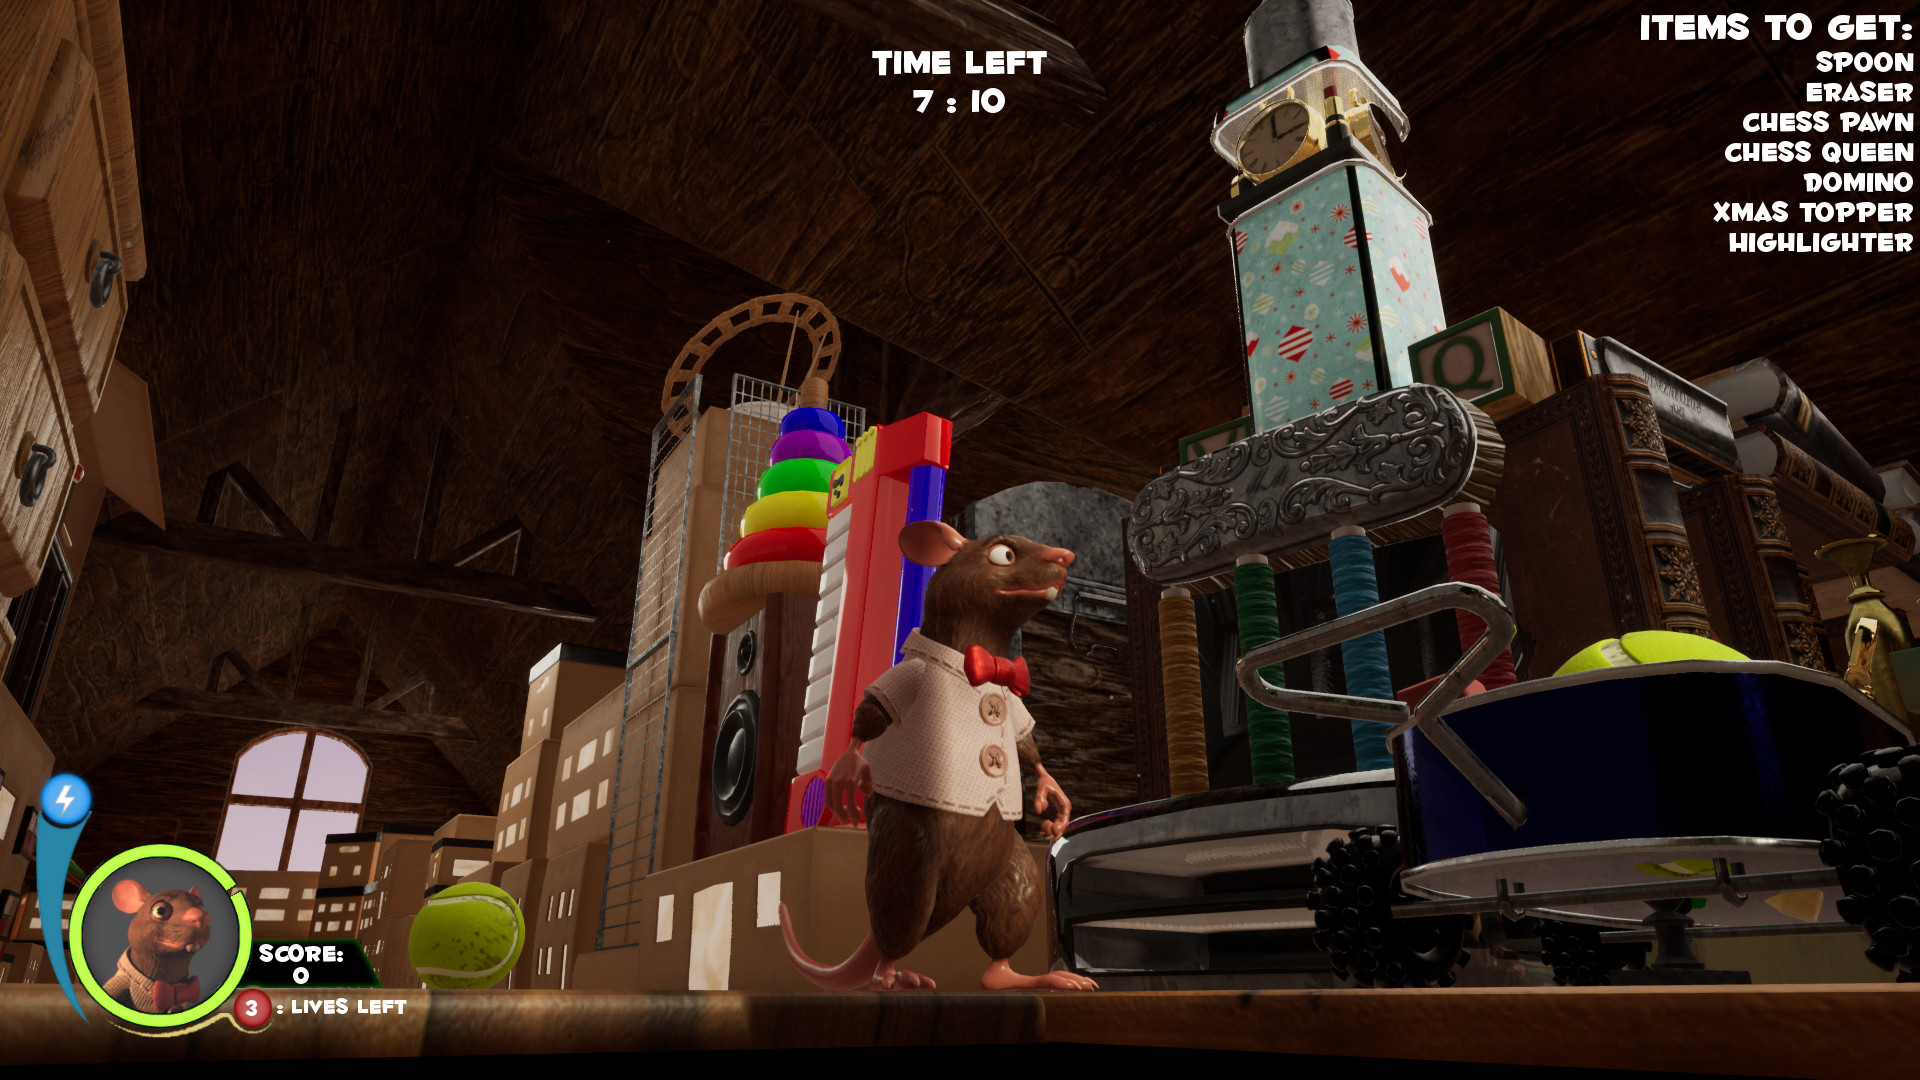 In game screenshot - The rat character, Drew, was modelled, textured, rigged and animated by me.